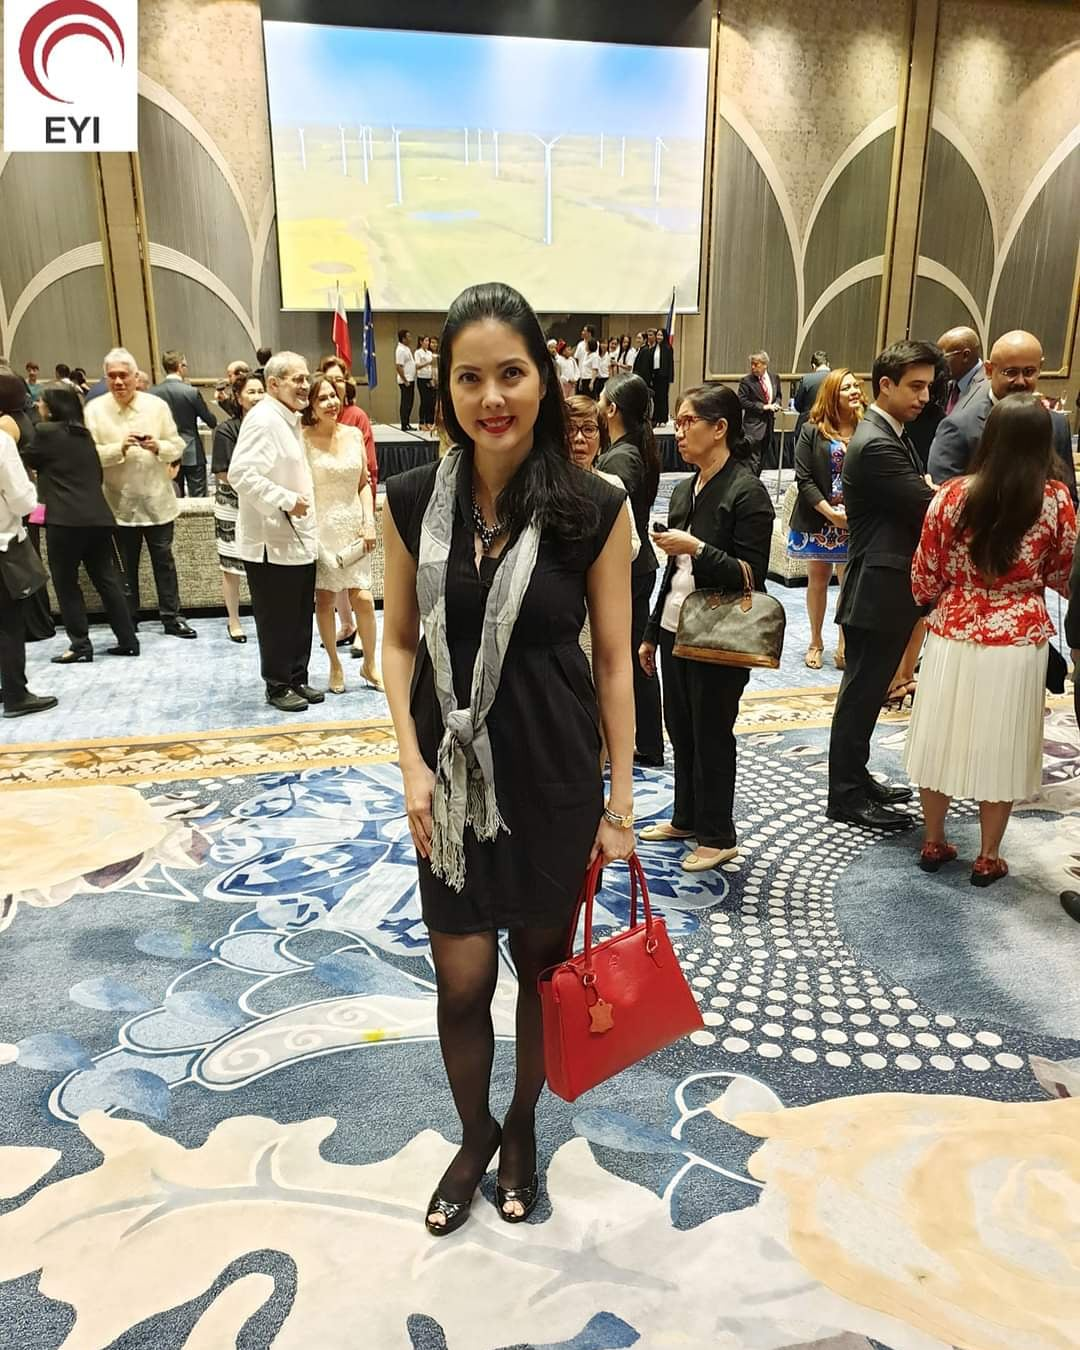 Networking A Room at Diplomatic Events